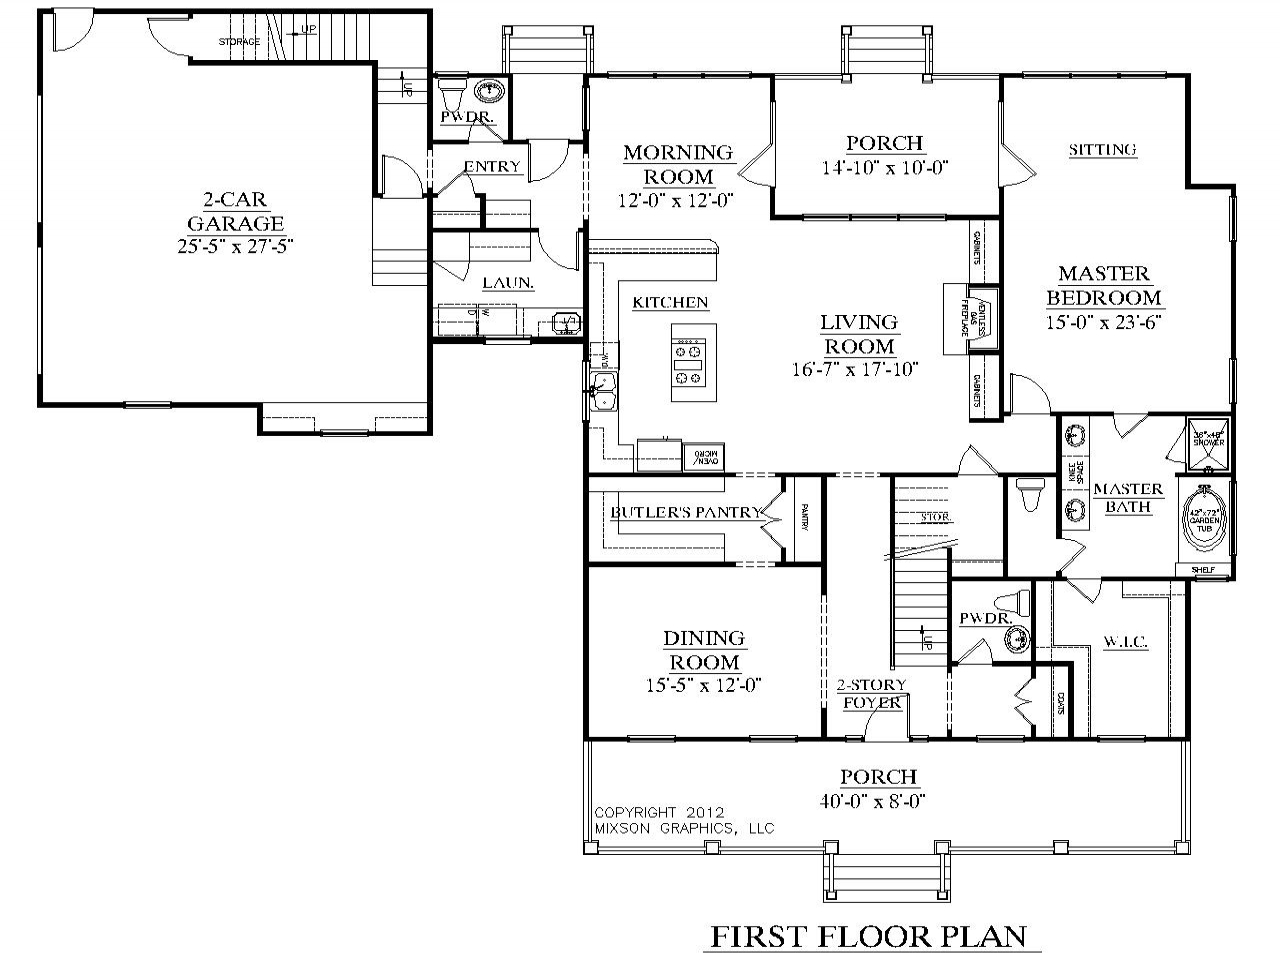 House plans with basements house plans with 2 bedrooms for Two bedroom house plans with basement